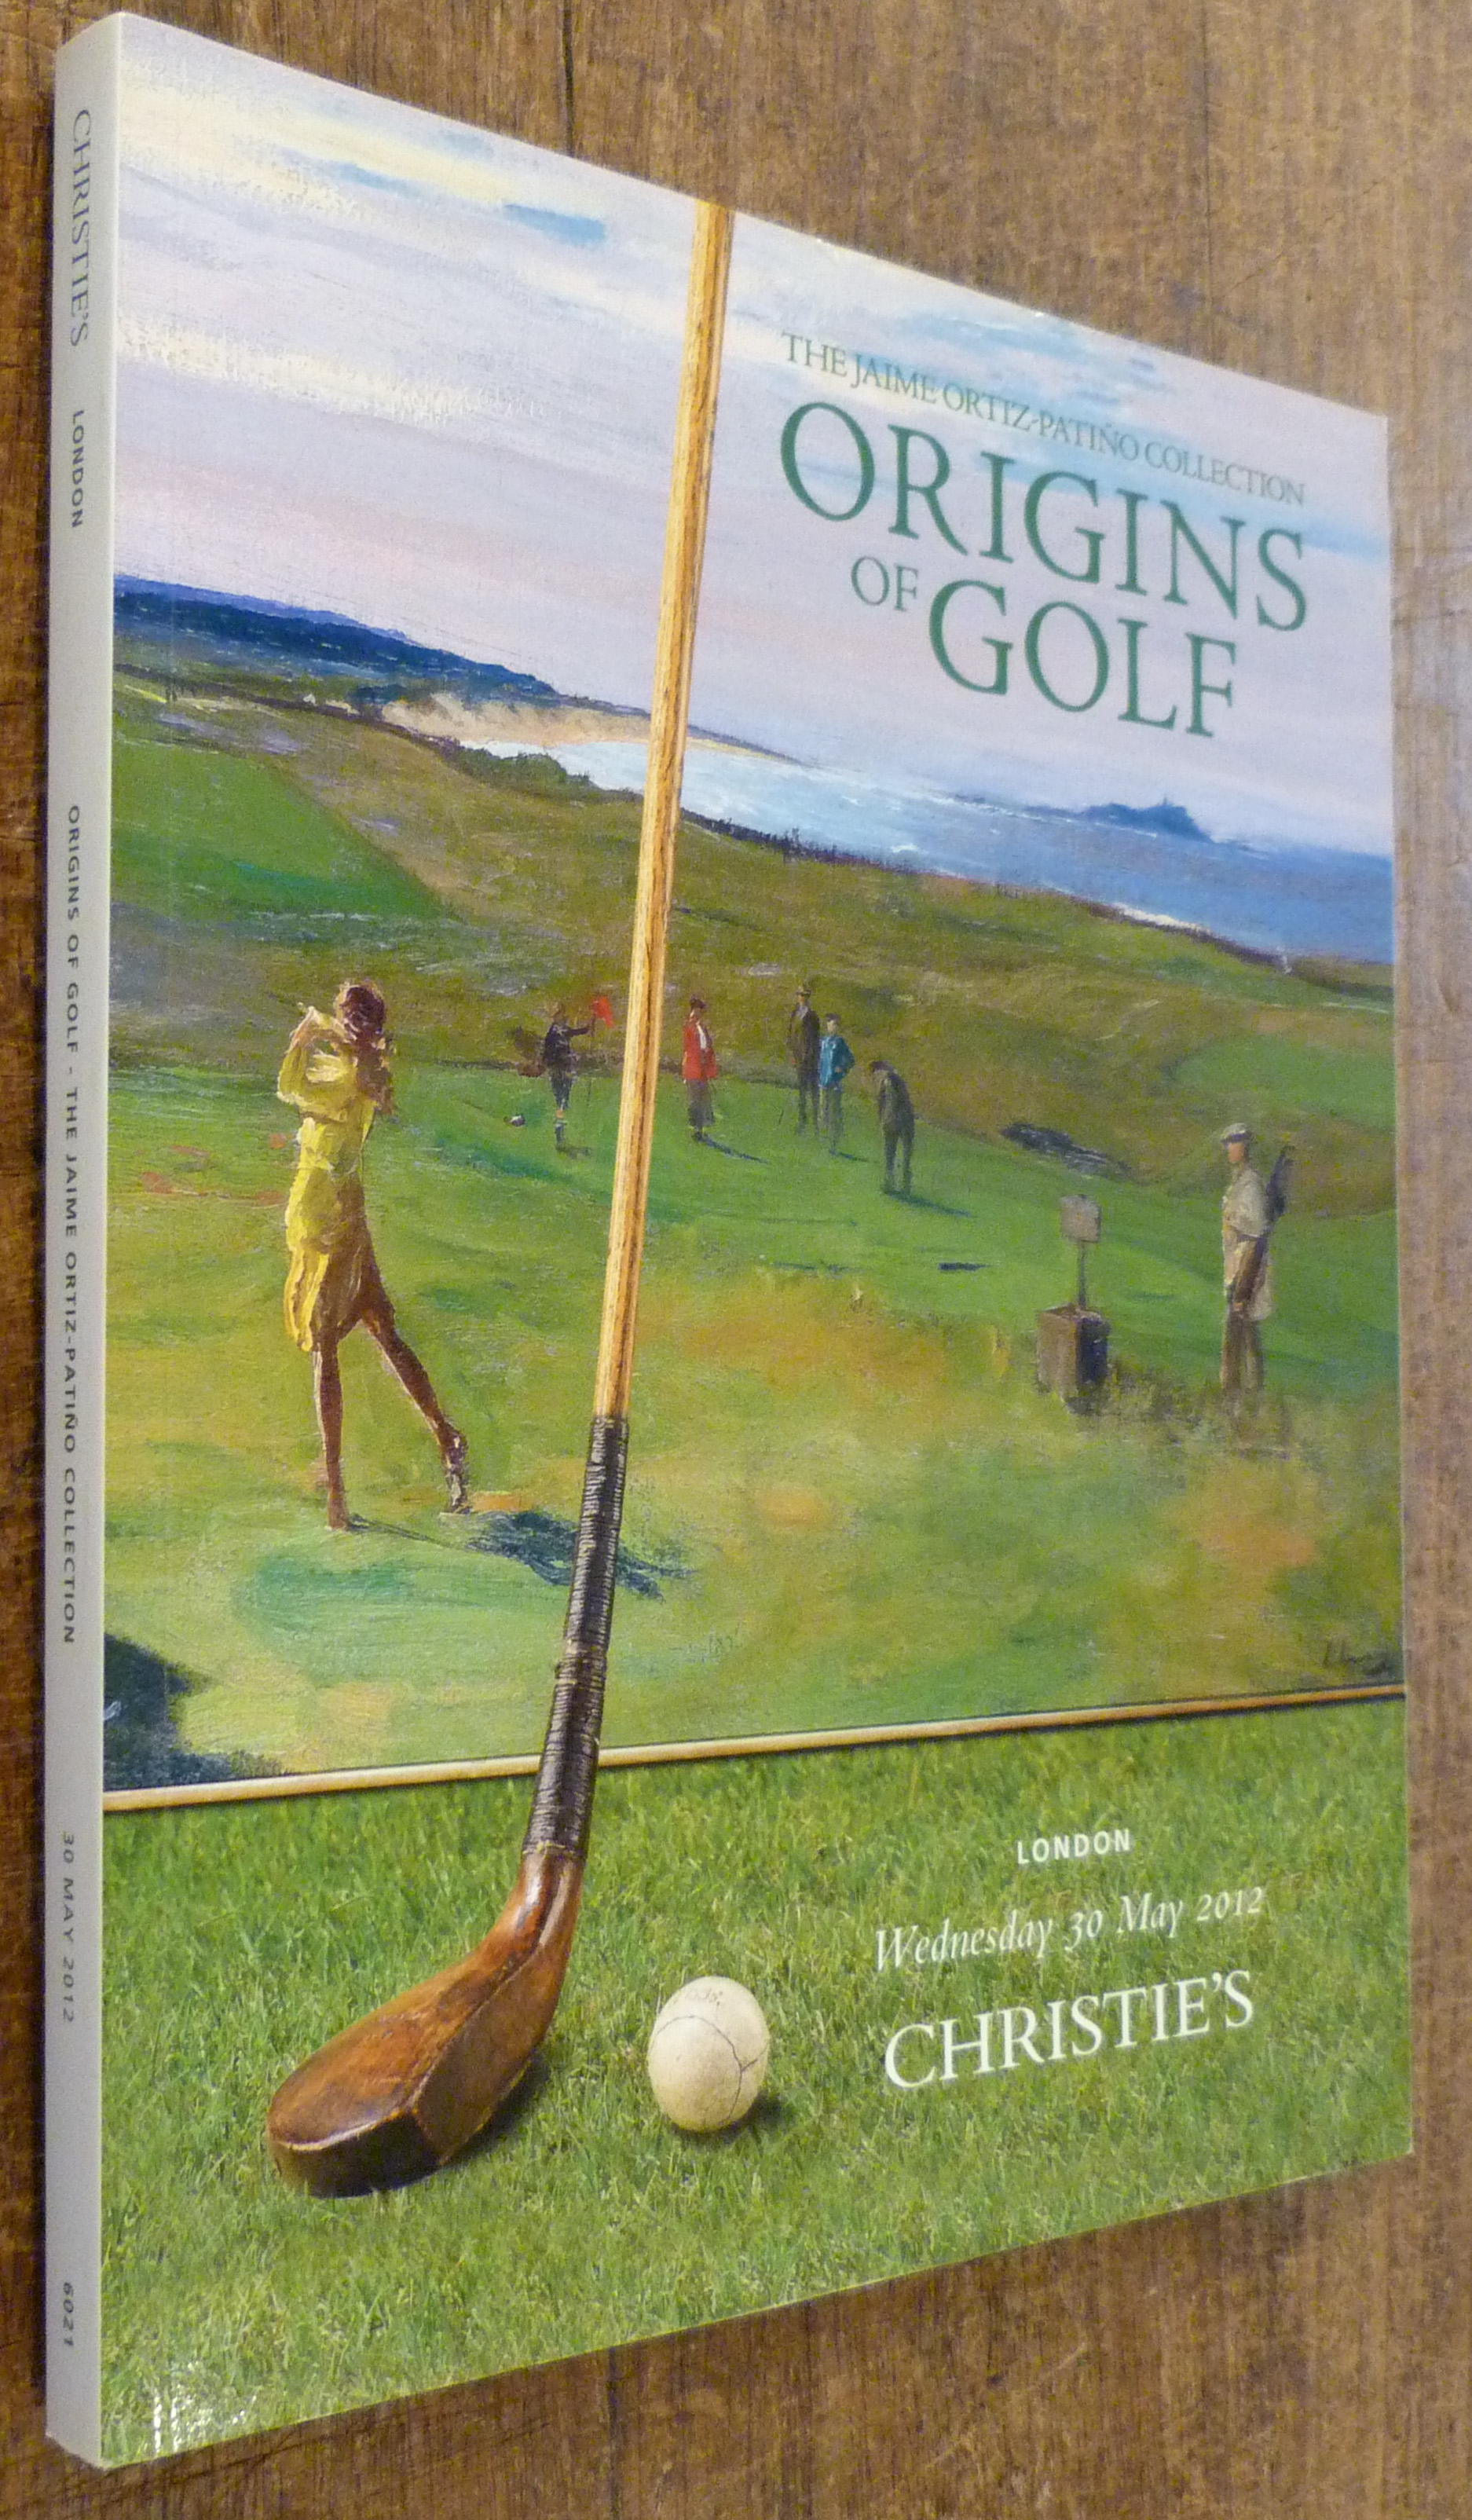 Image for The Jaime Ortiz-Patino Collection; Origins of Golf. Auction Wednesday 30 May 2012